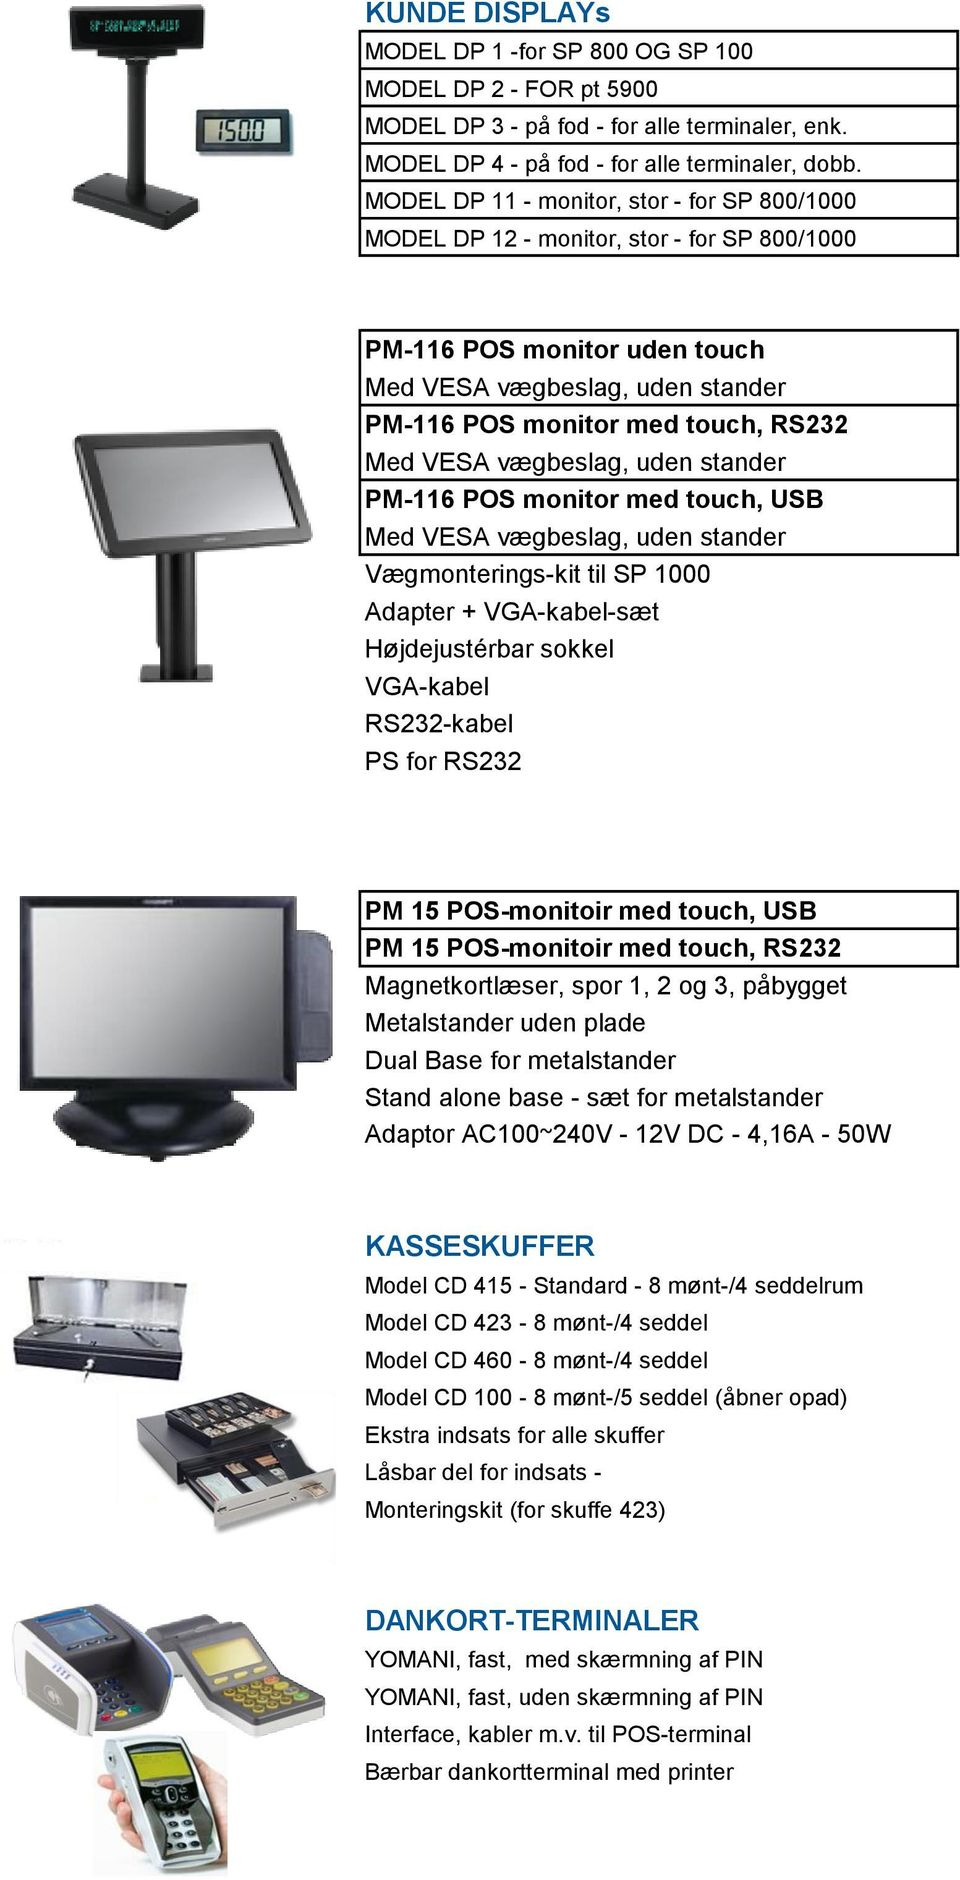 vægbeslag, uden stander PM-116 POS monitor med touch, USB Med VESA vægbeslag, uden stander Vægmonterings-kit til SP 1000 Adapter + VGA-kabel-sæt Højdejustérbar sokkel VGA-kabel RS232-kabel PS for